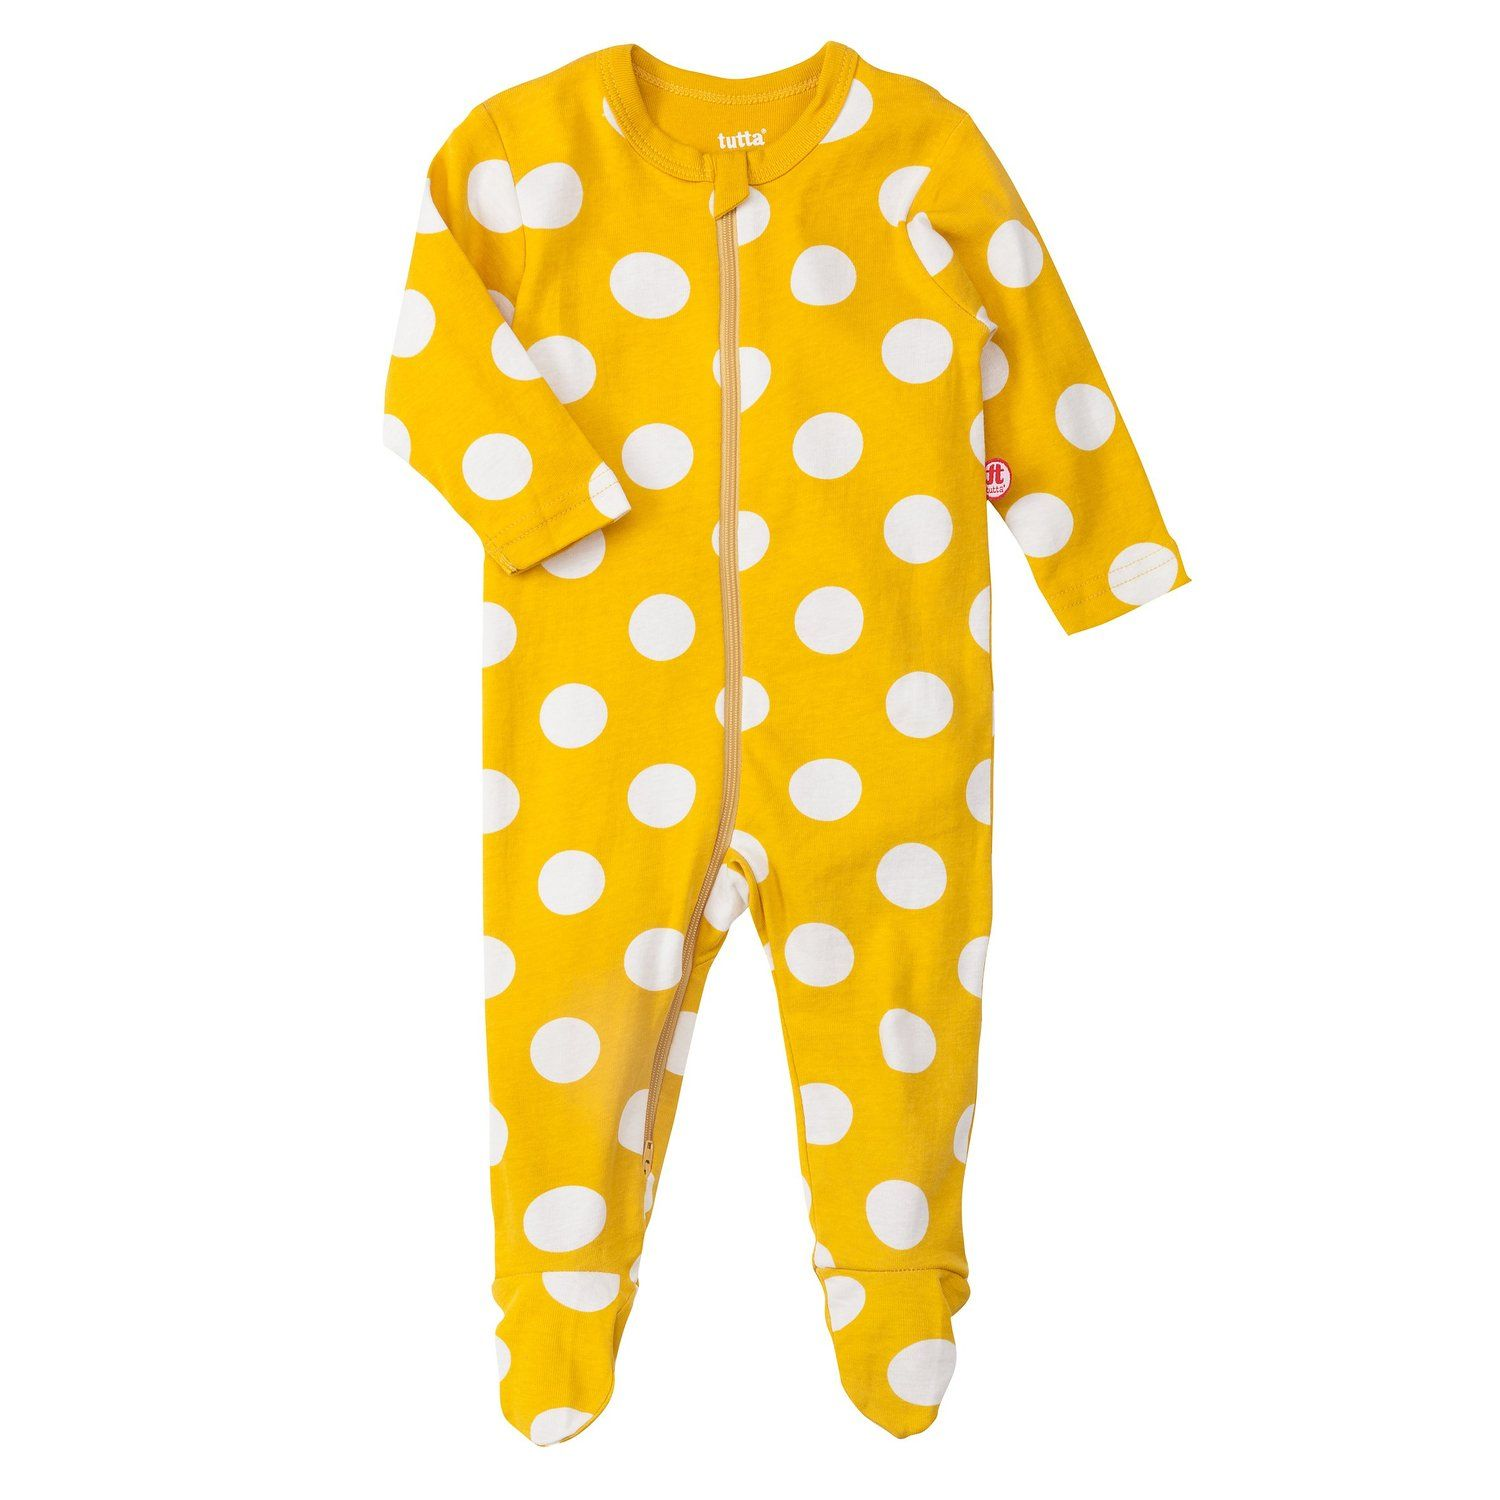 8153b7041d Tutta - Sleeper -World of Dots- [610497]: Amazon.co.uk: Clothing ...